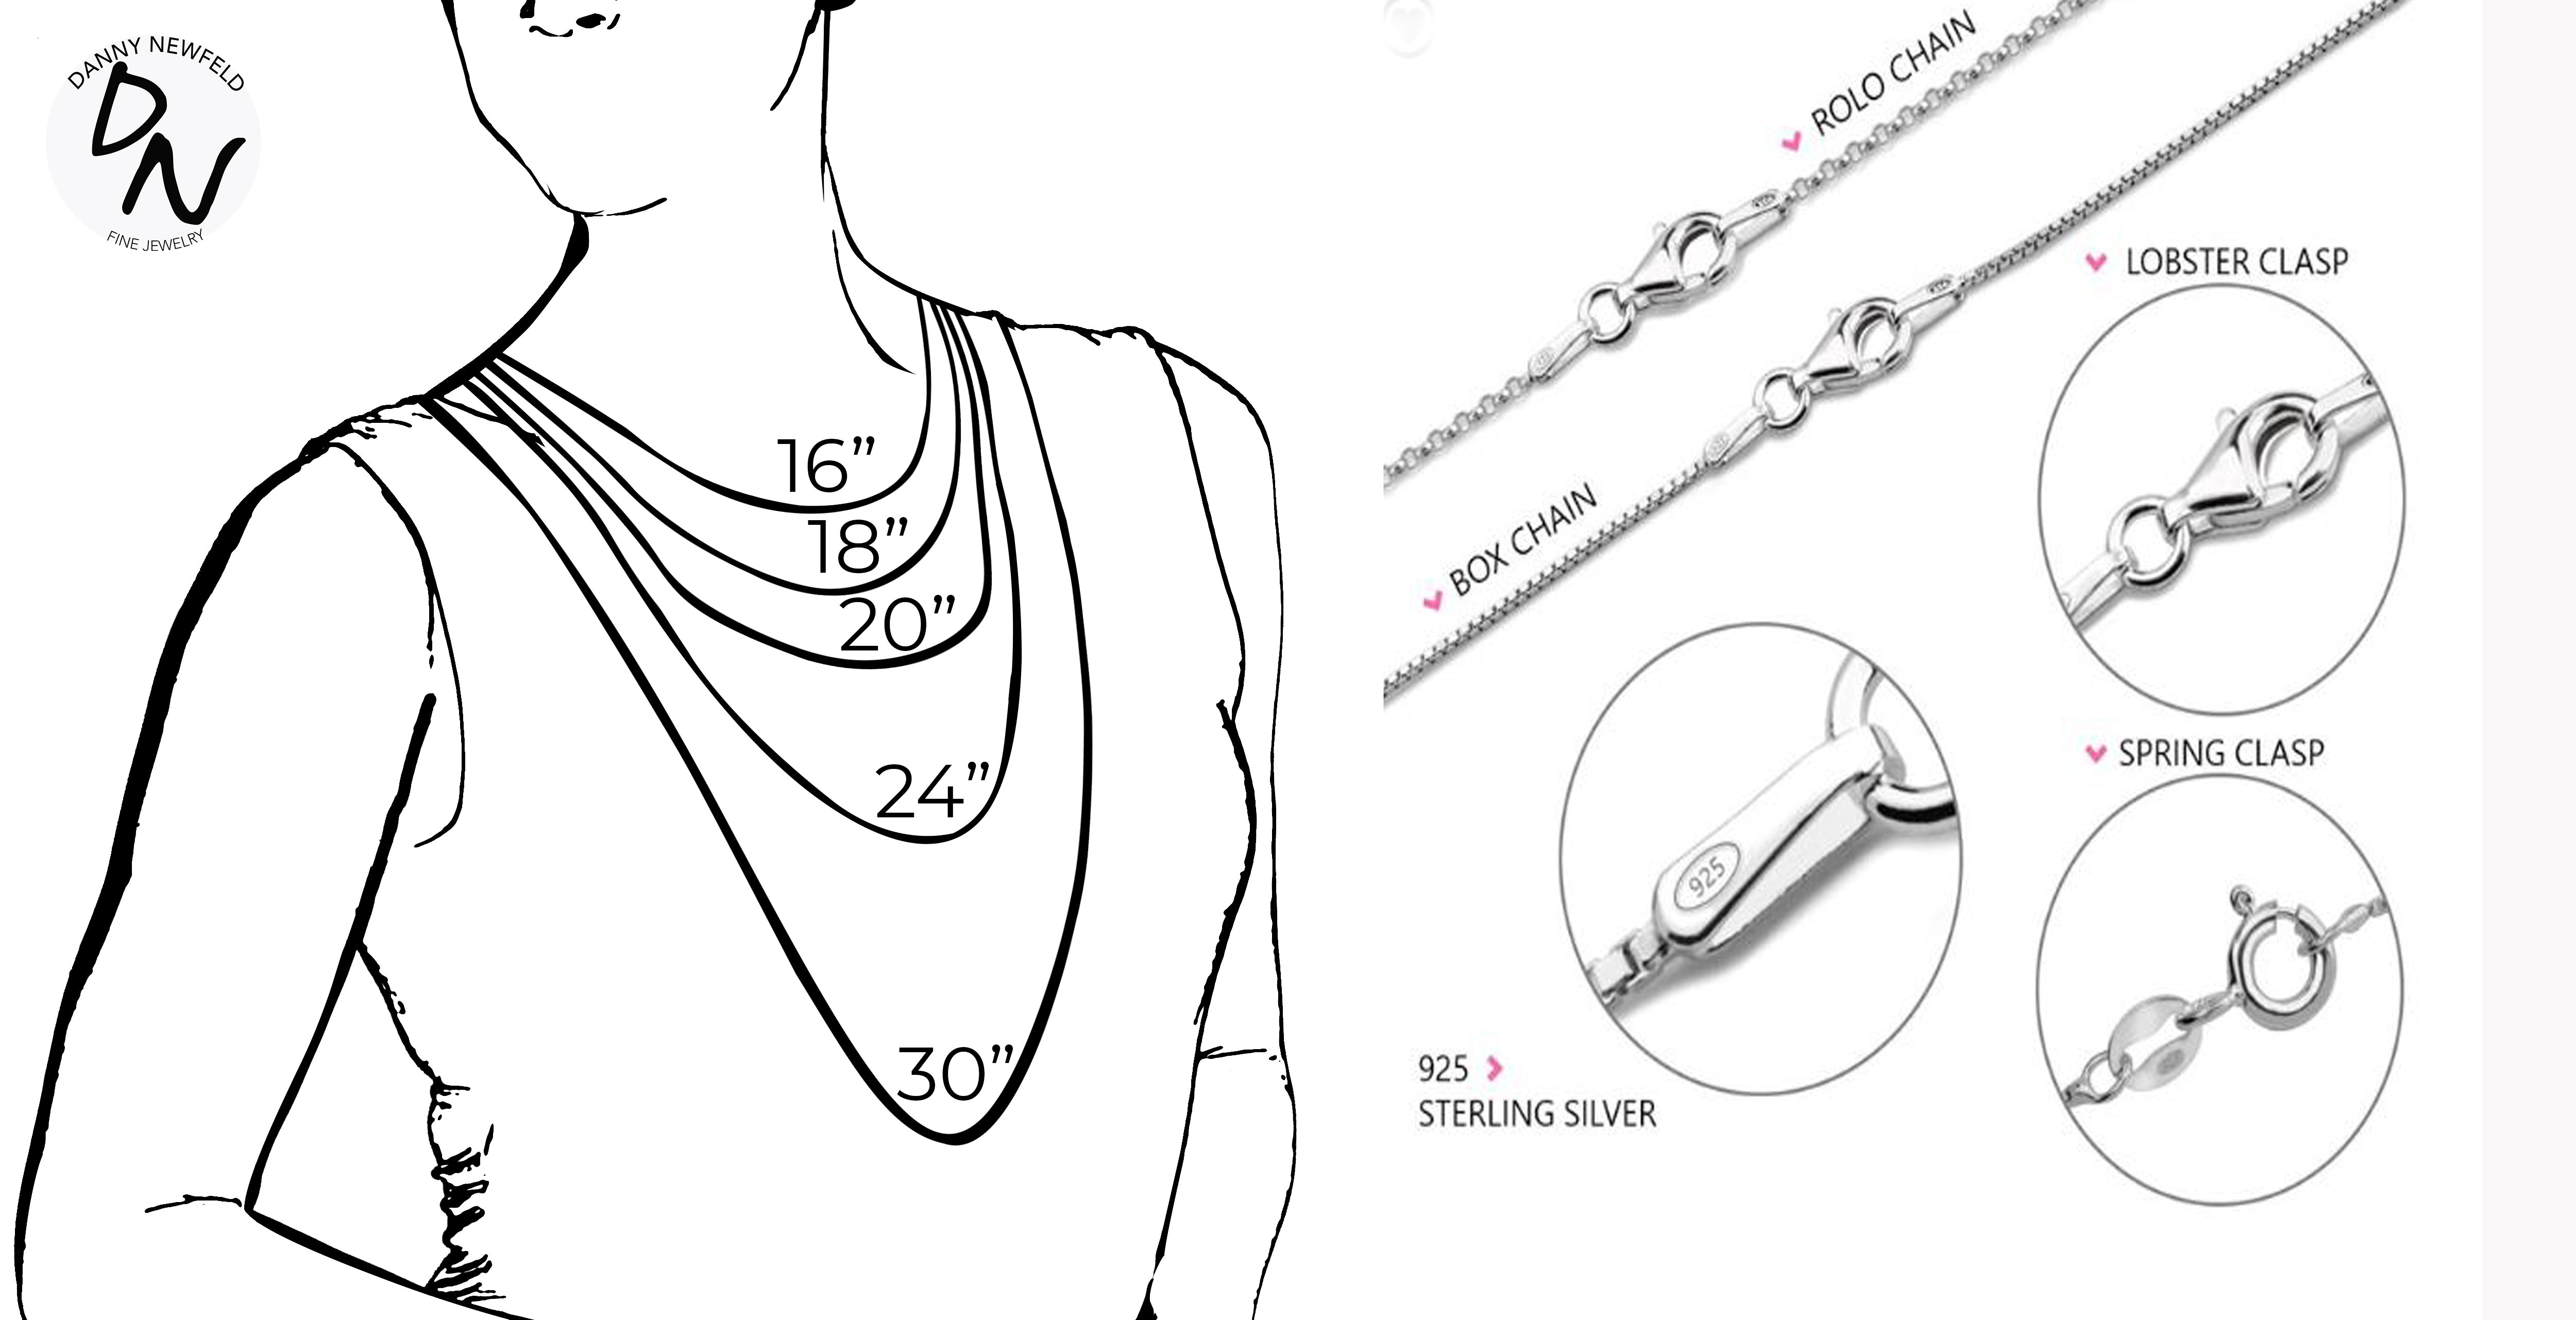 Danny Newfeld Necklace Sizing Guide